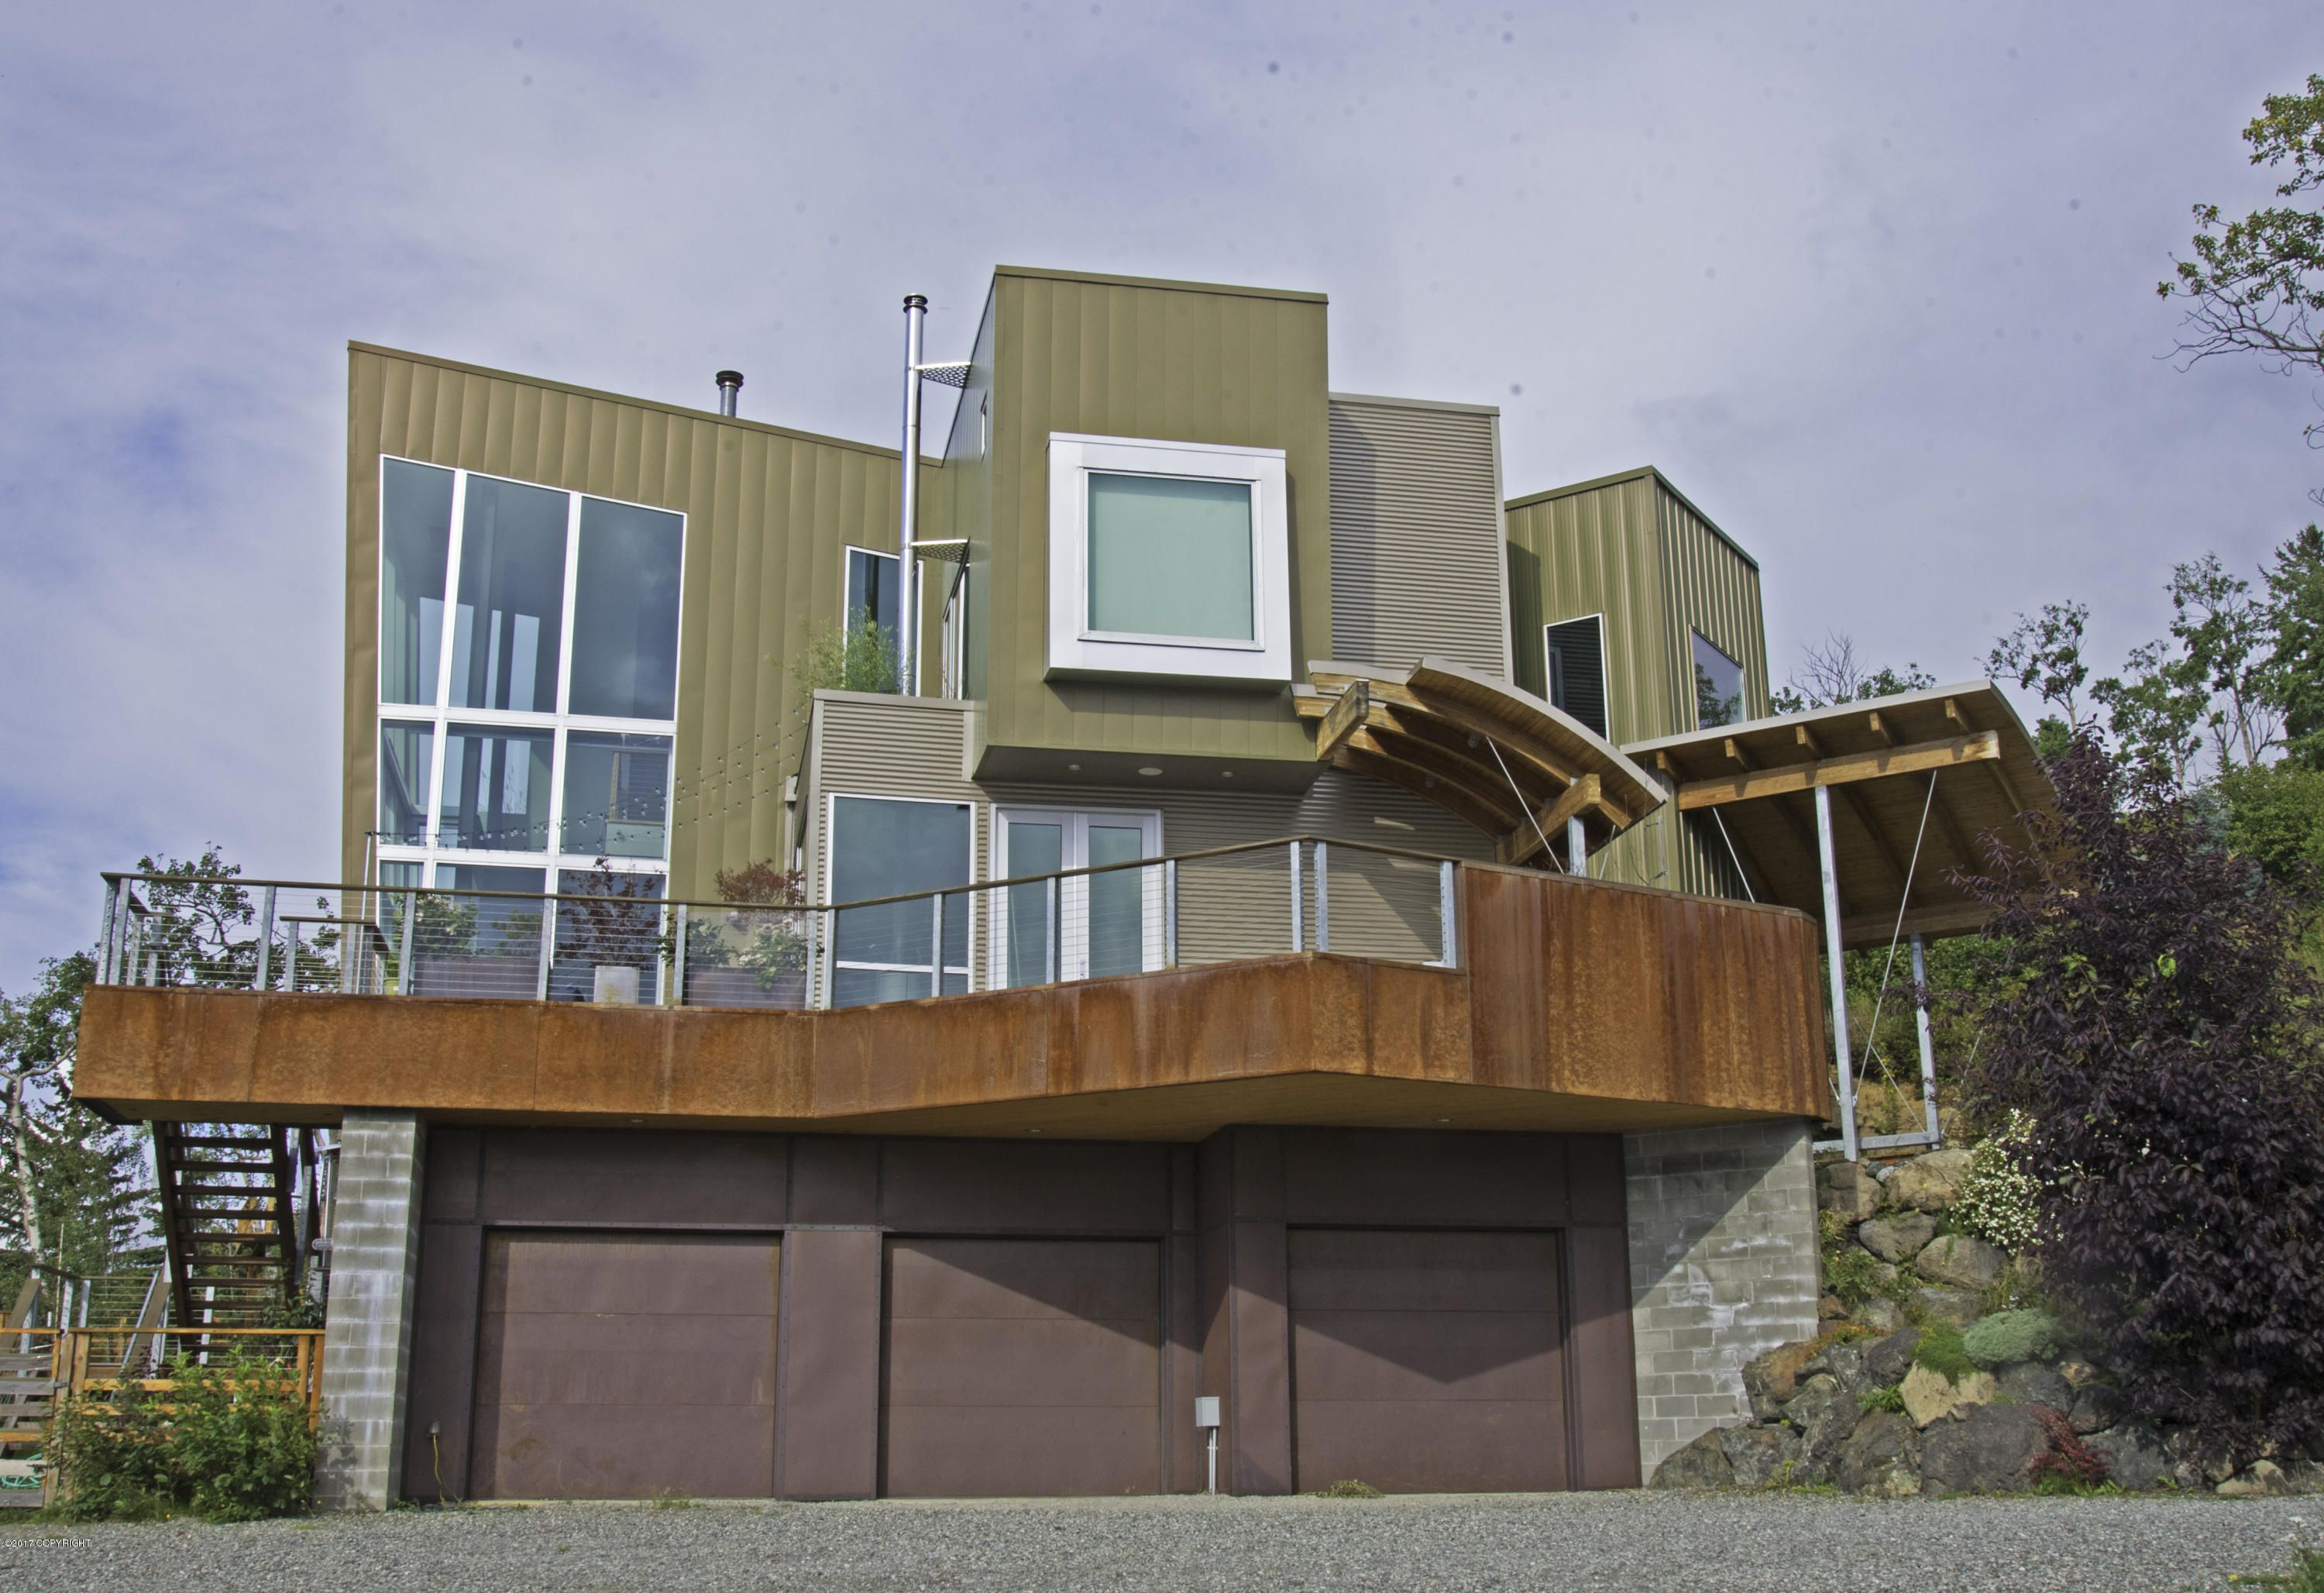 5 Most Expensive Homes In Alaska On The Market Most Expensive